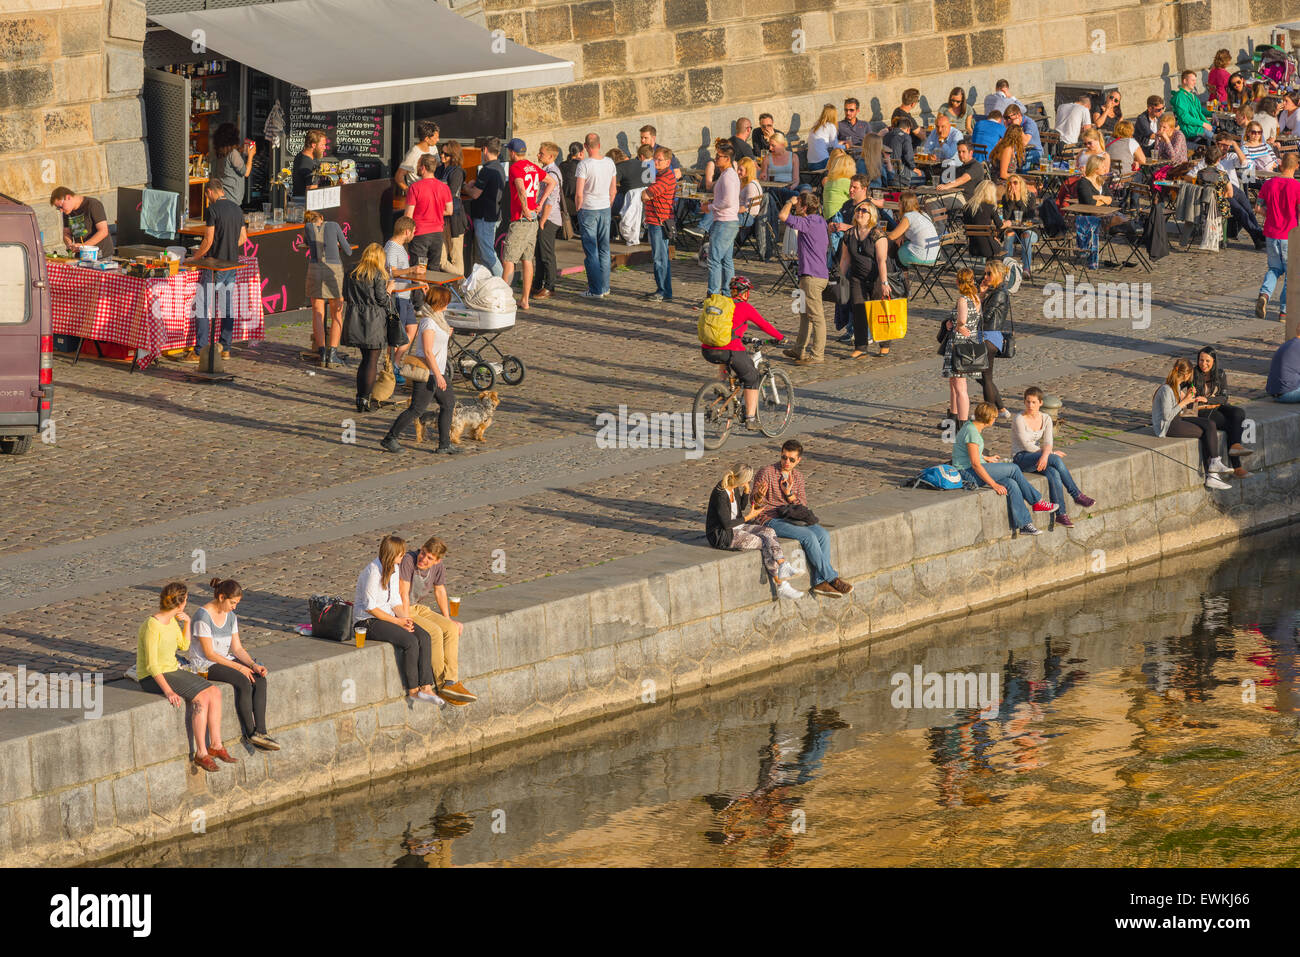 Prague river, view of young people gathered along the embankment of the River Vltava in Prague on a summer afternoon, - Stock Image